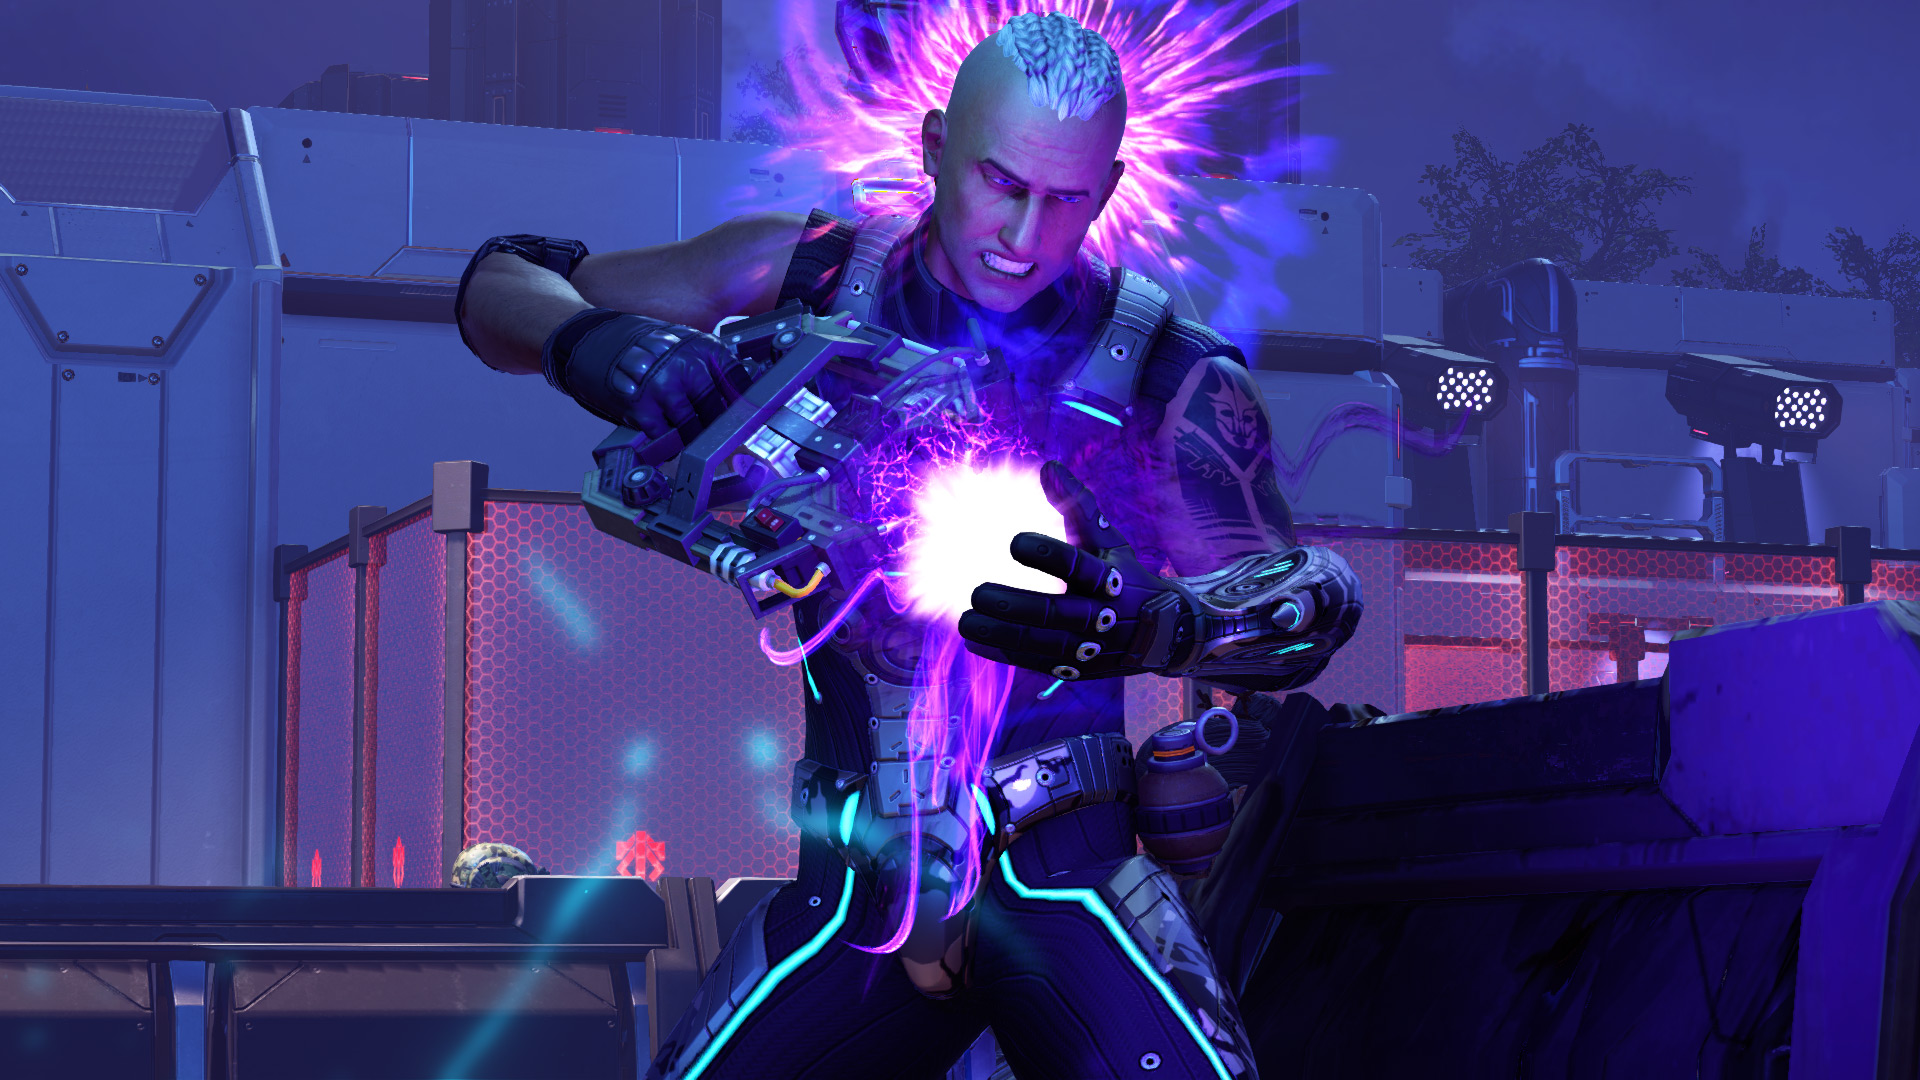 PT - XCOM 2's Psi Operative Wages War with Powerful Psychic Abilitie